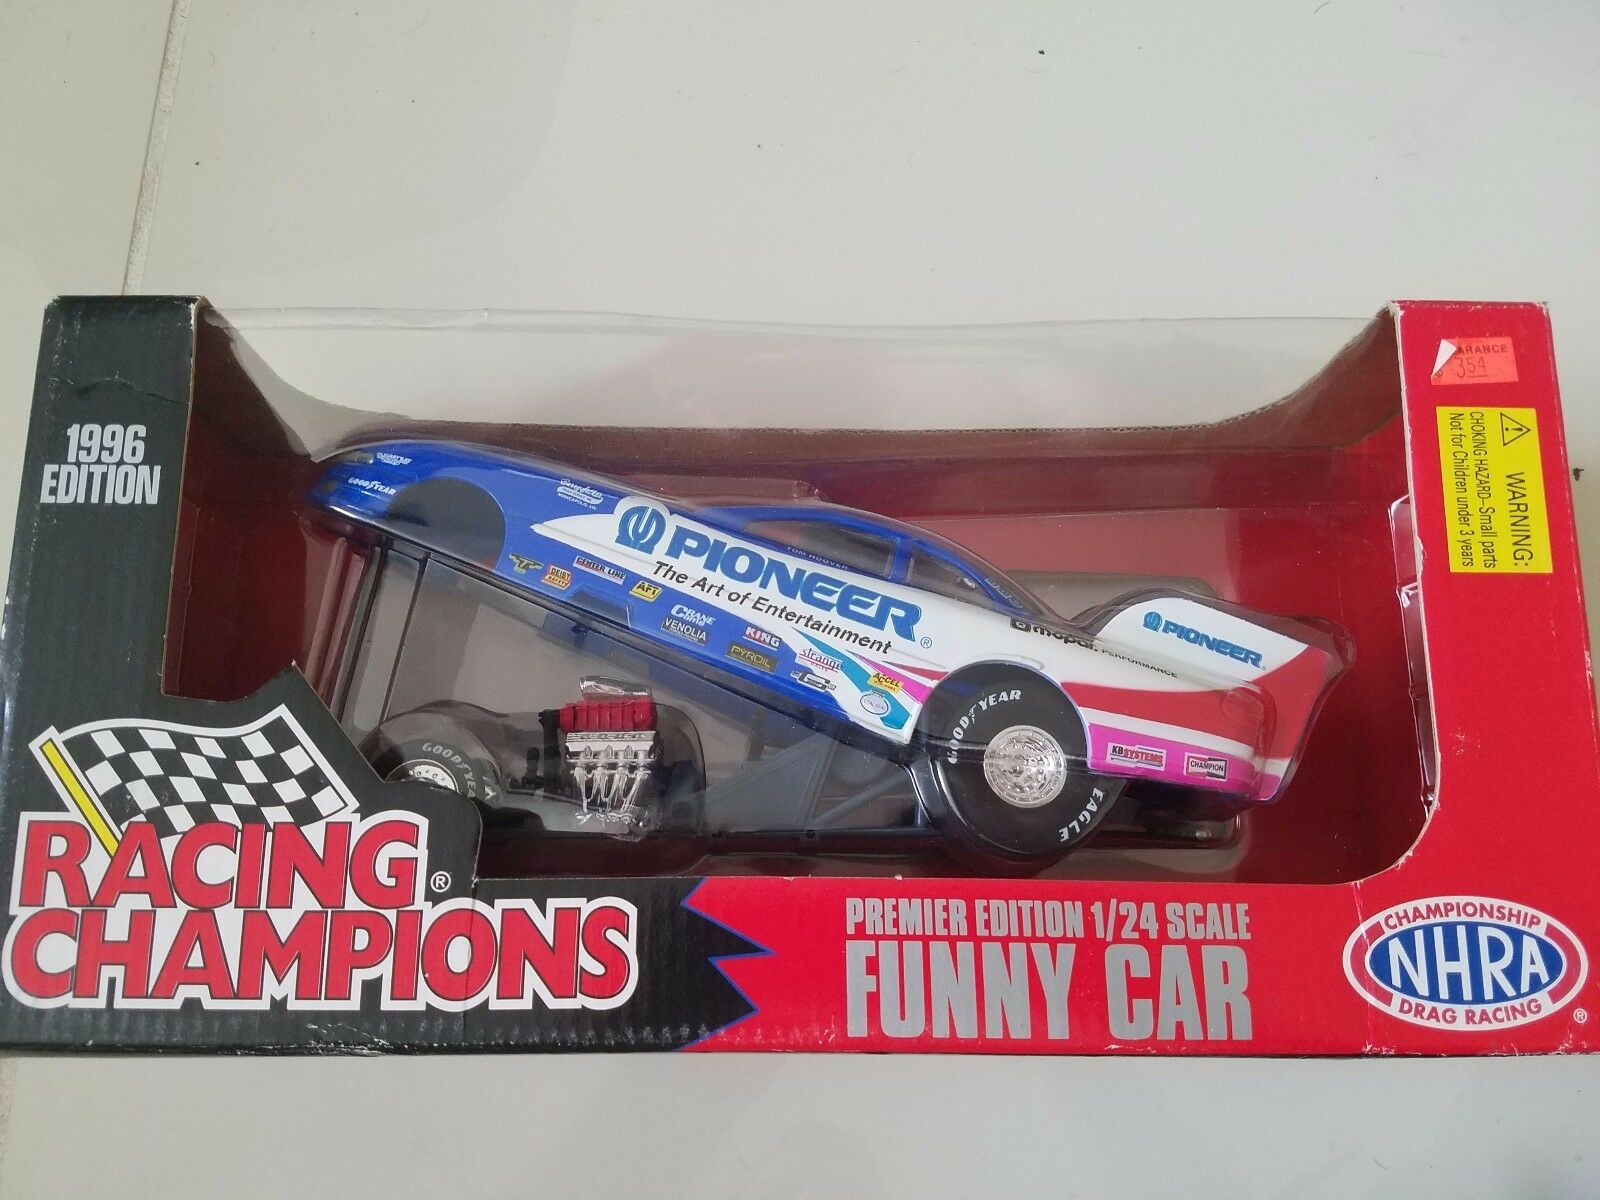 RACING CHAMPIONS PREMIER EDITION 1 24 SCALE FUNNY CAR 1996 DIECAST NEW IN BOX